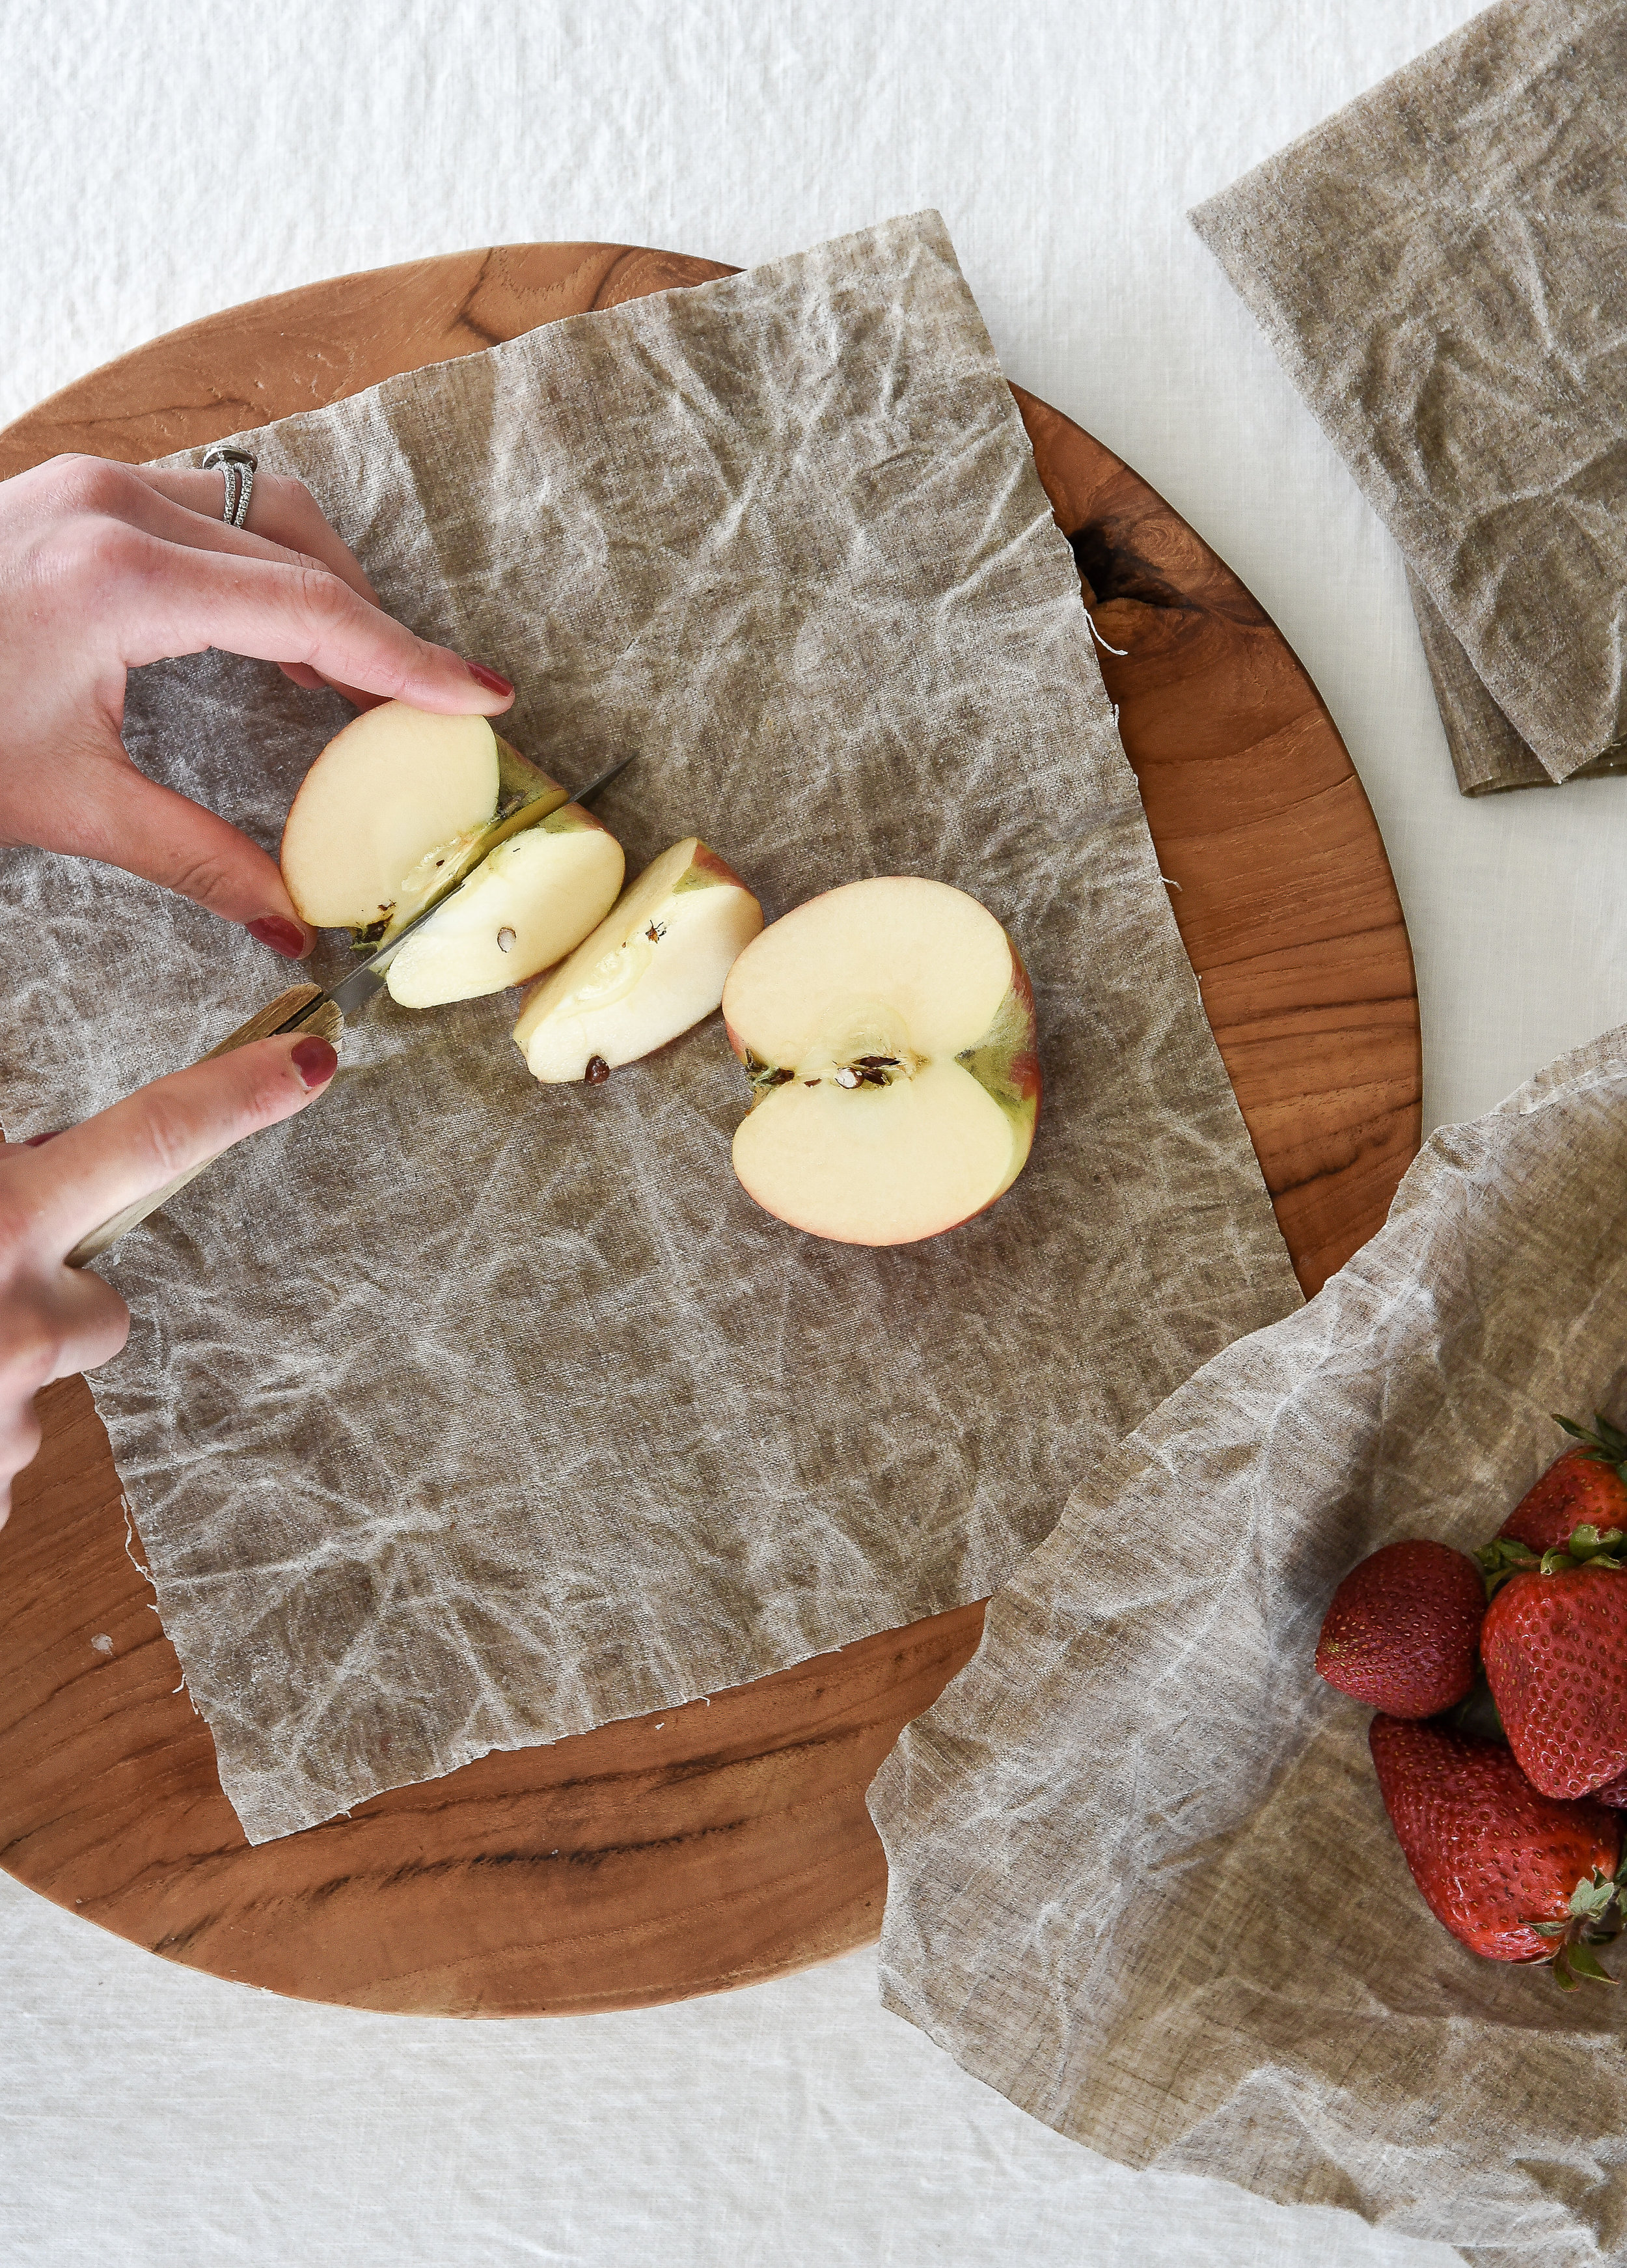 How to make your own Bee's Wrap - DIY Beeswax Wraps from linen or cotton. Green Living and sustainable! #greenliving #sustainable